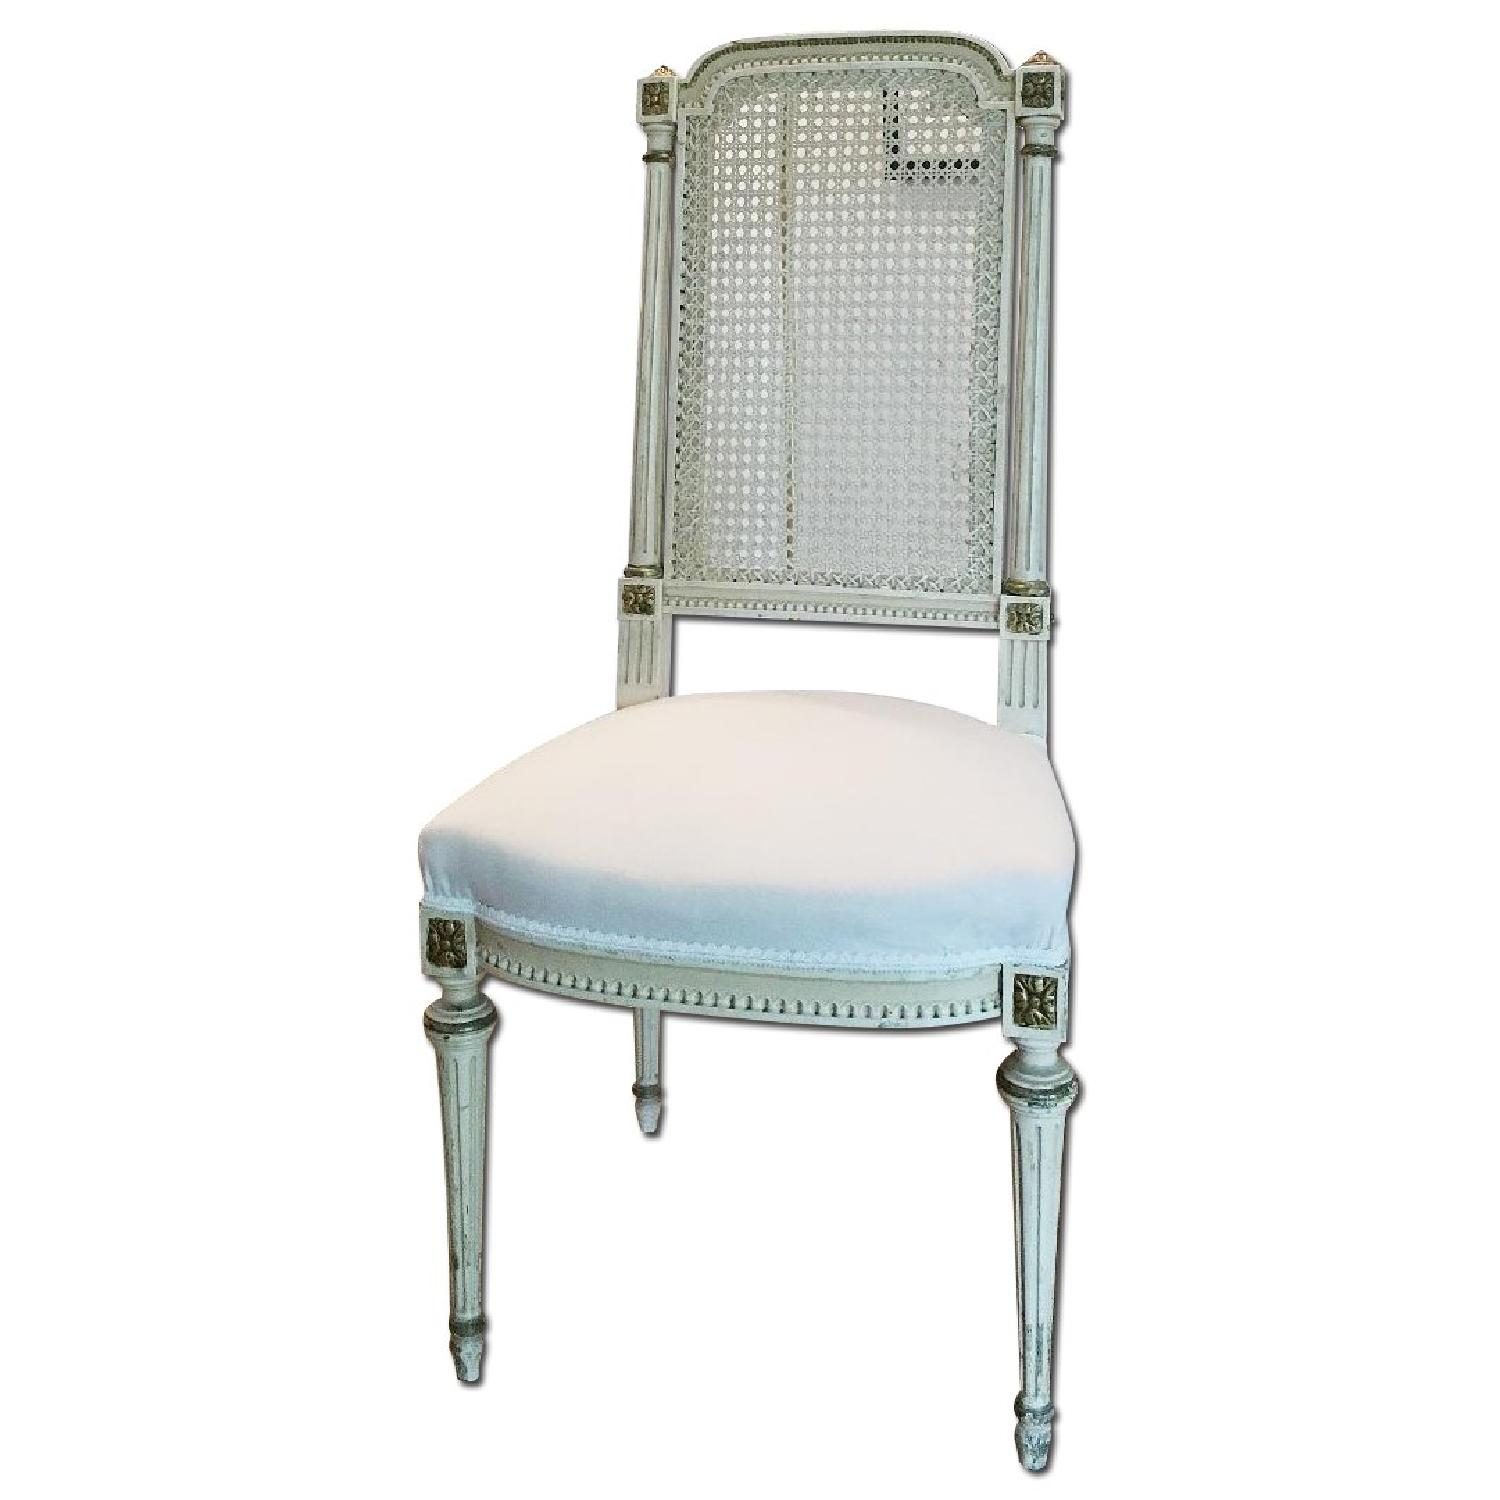 Antique French Traditional Dining Chairs - image-0